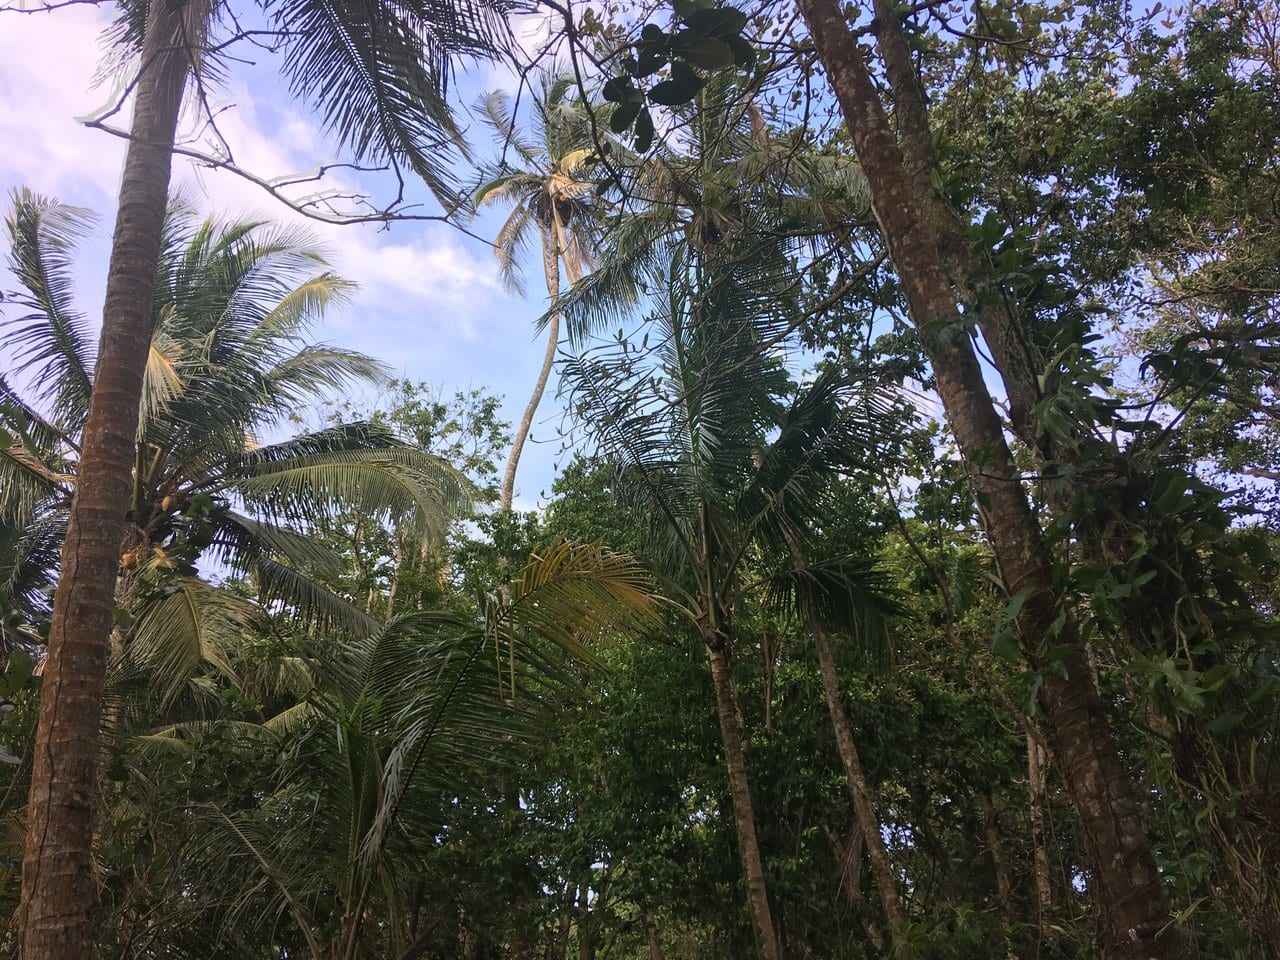 Palm trees in Central America